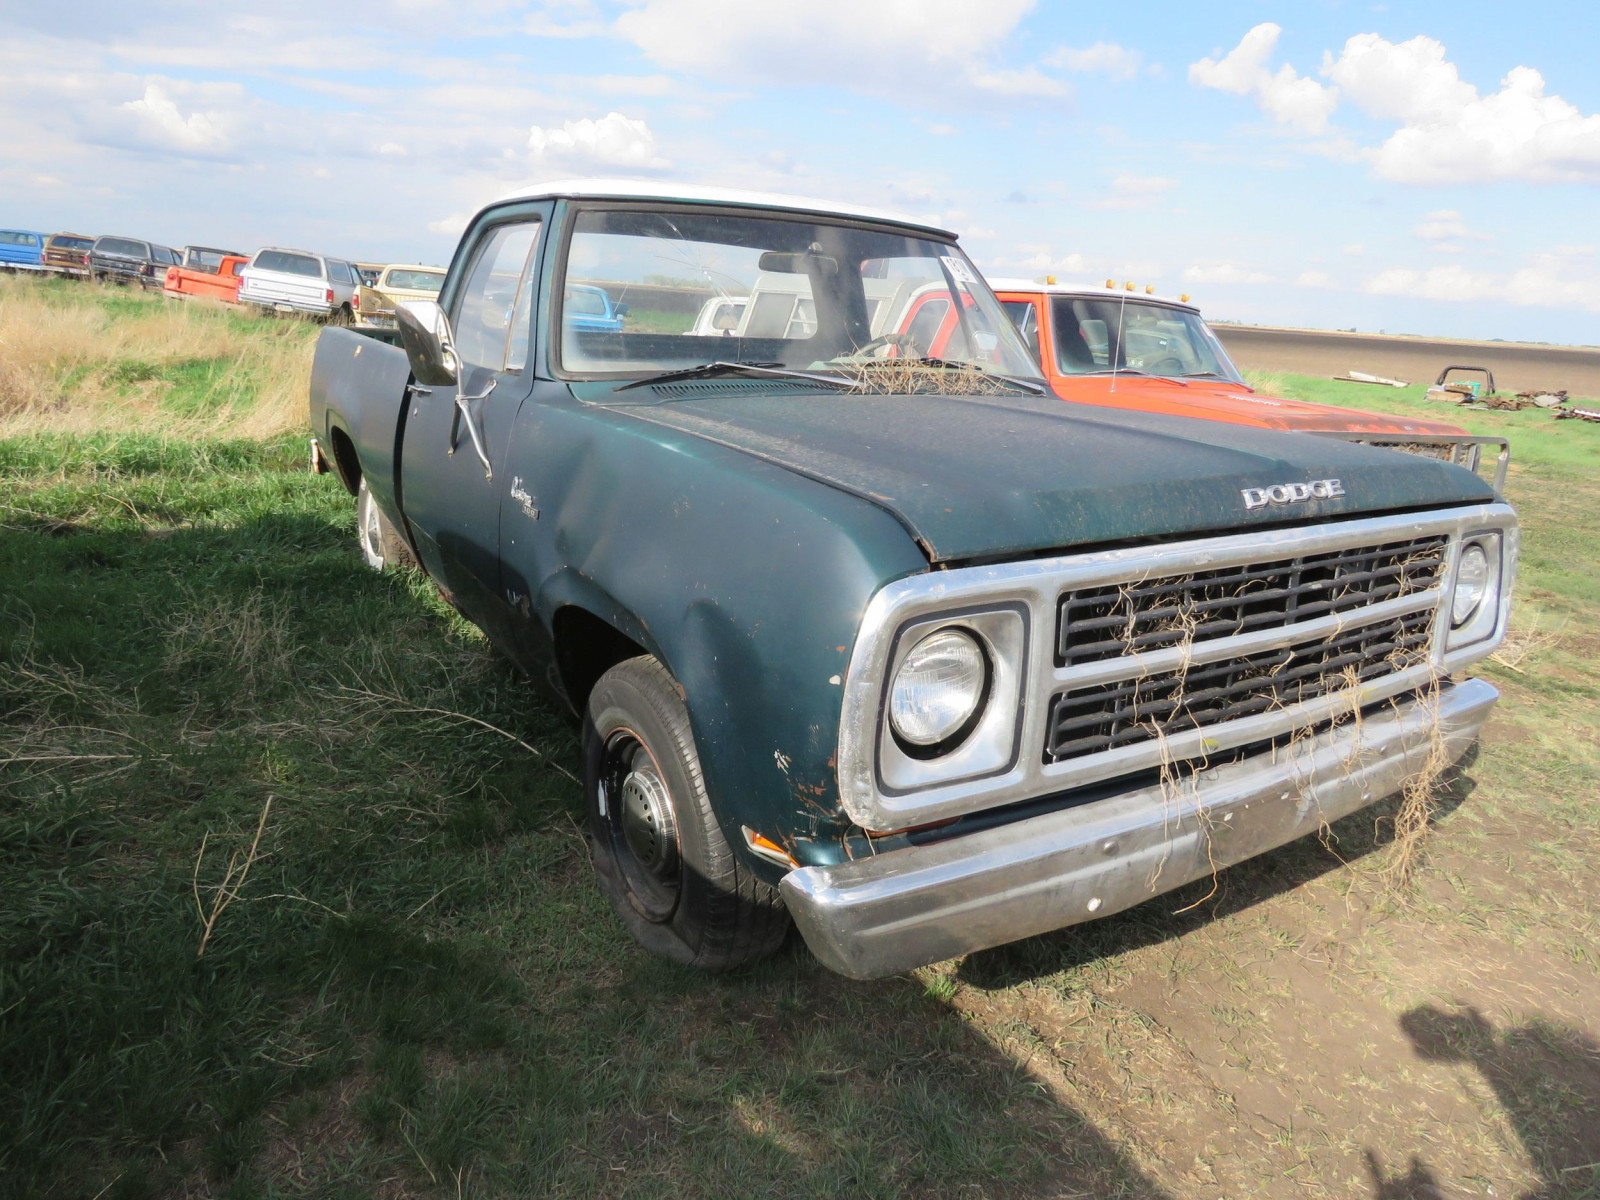 1979 Dodge D100 Pickup - Image 2